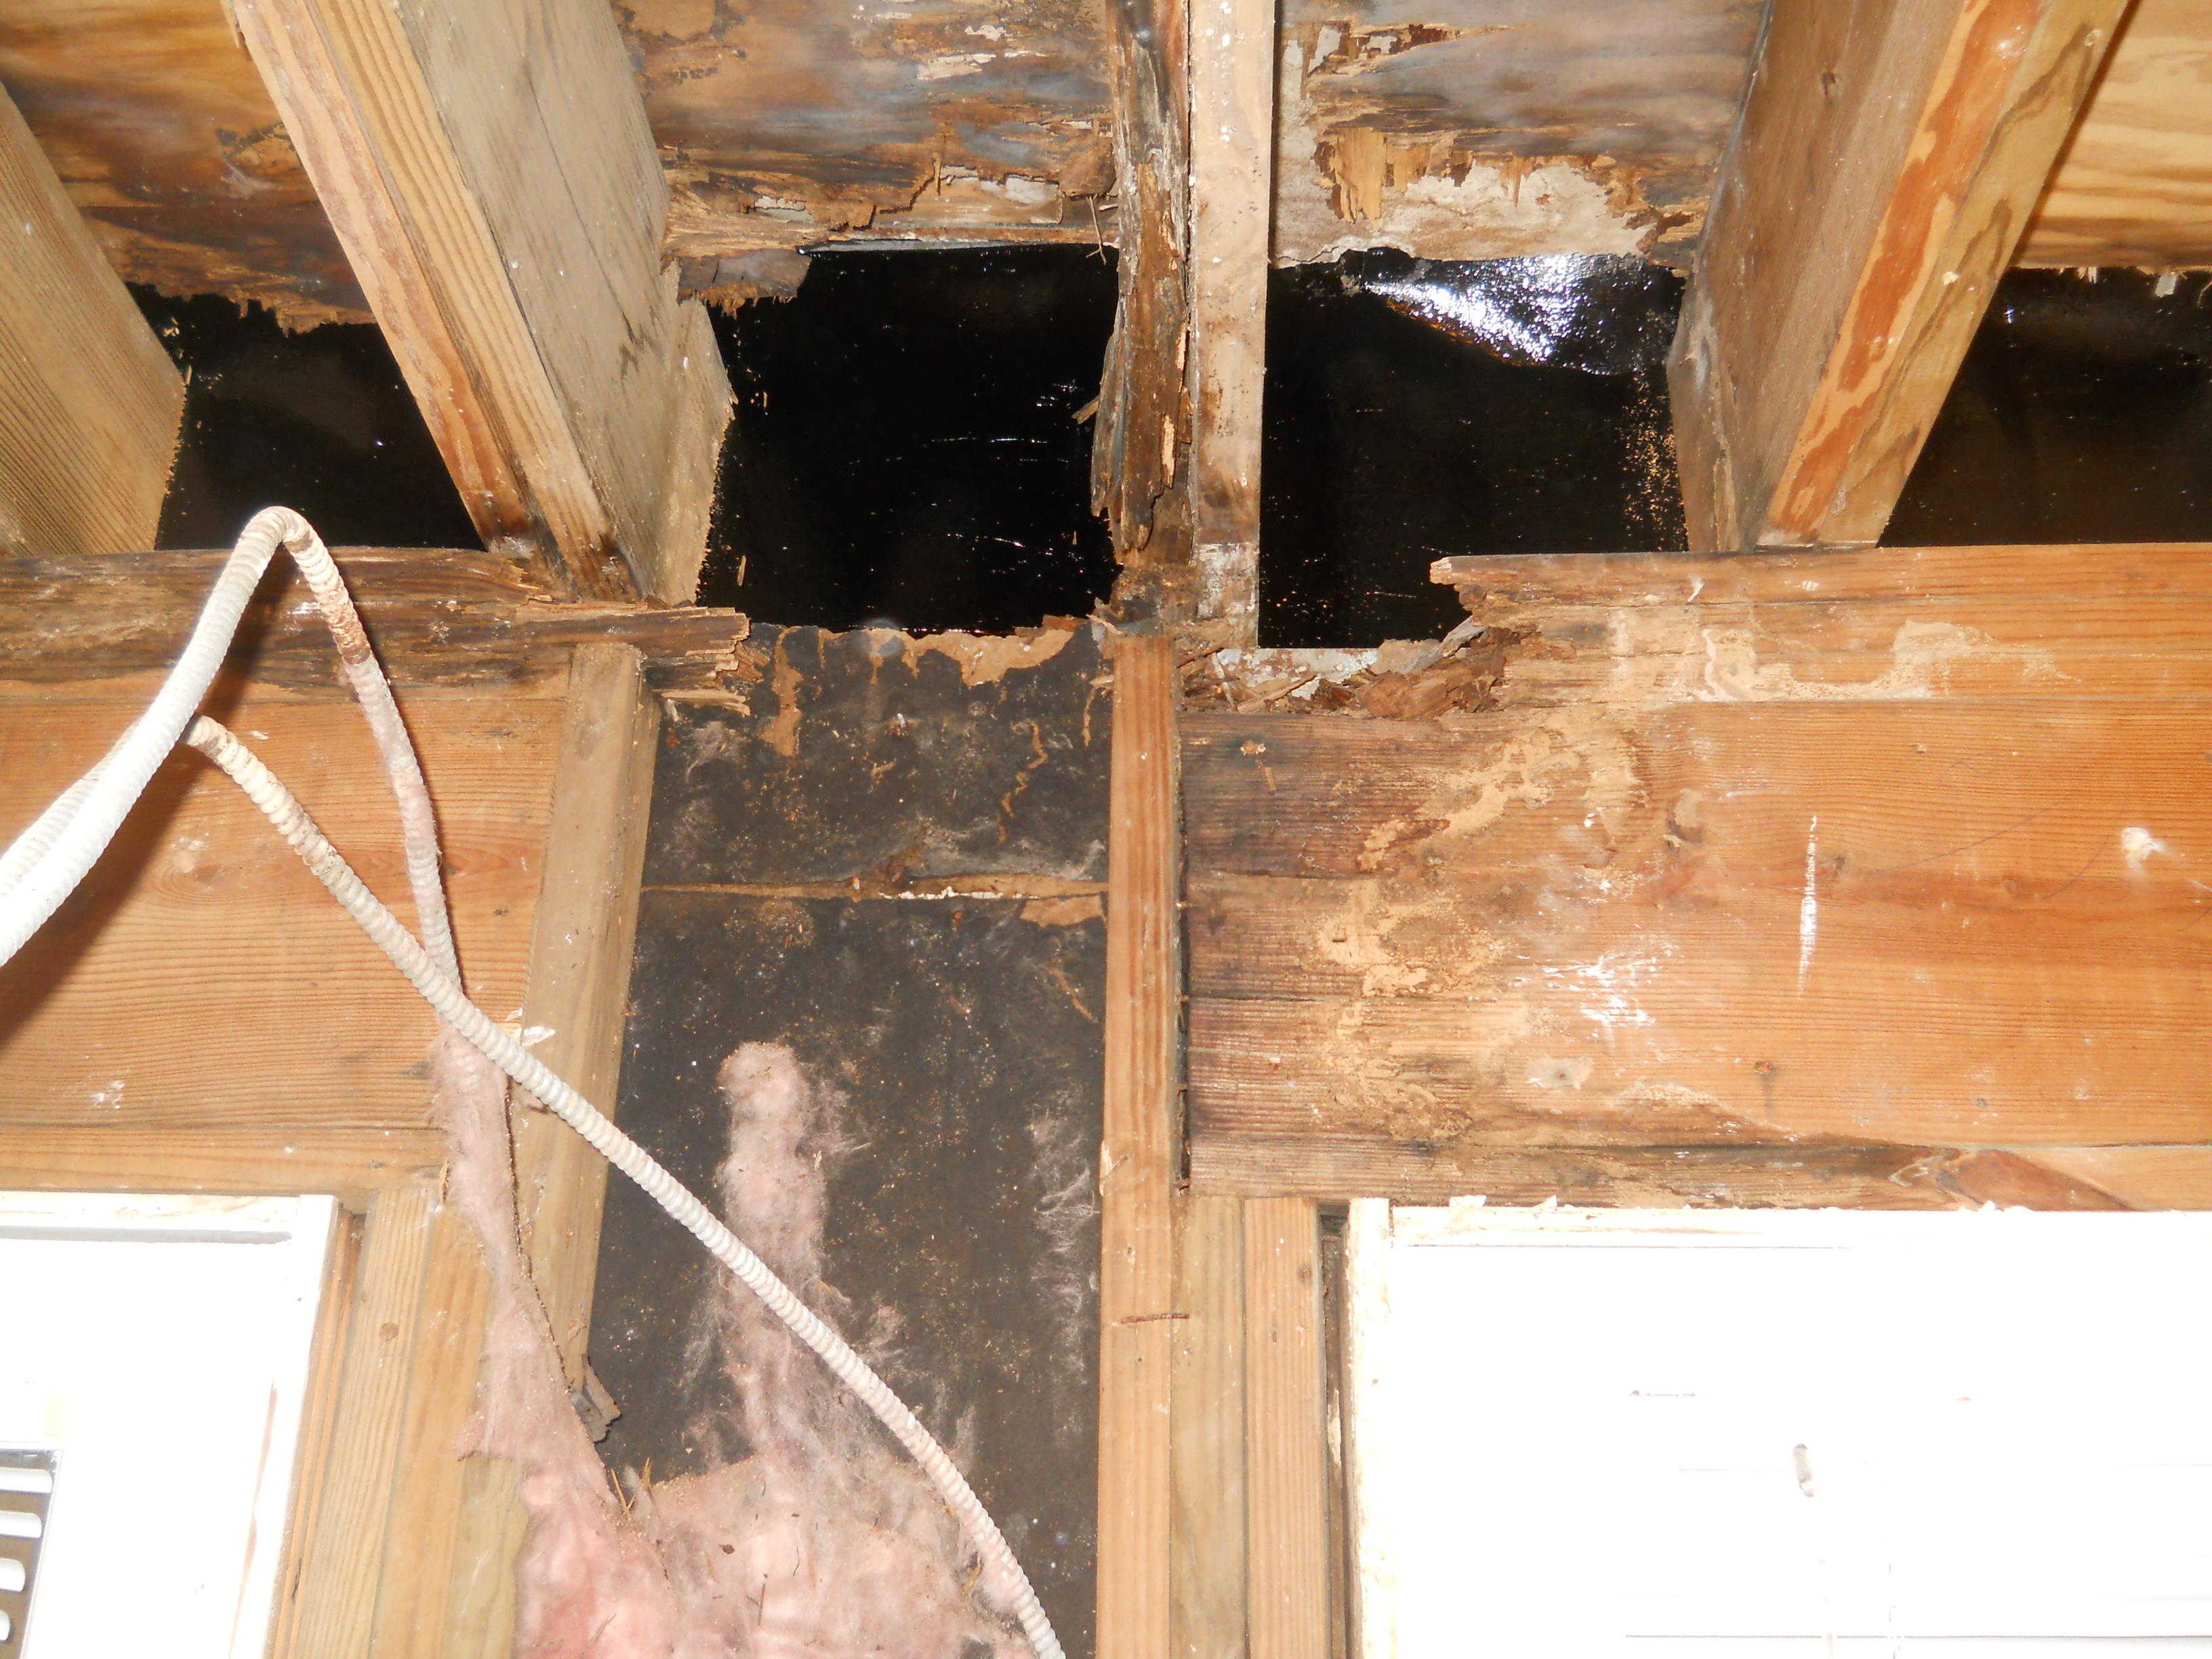 Water damaged interior wood framing